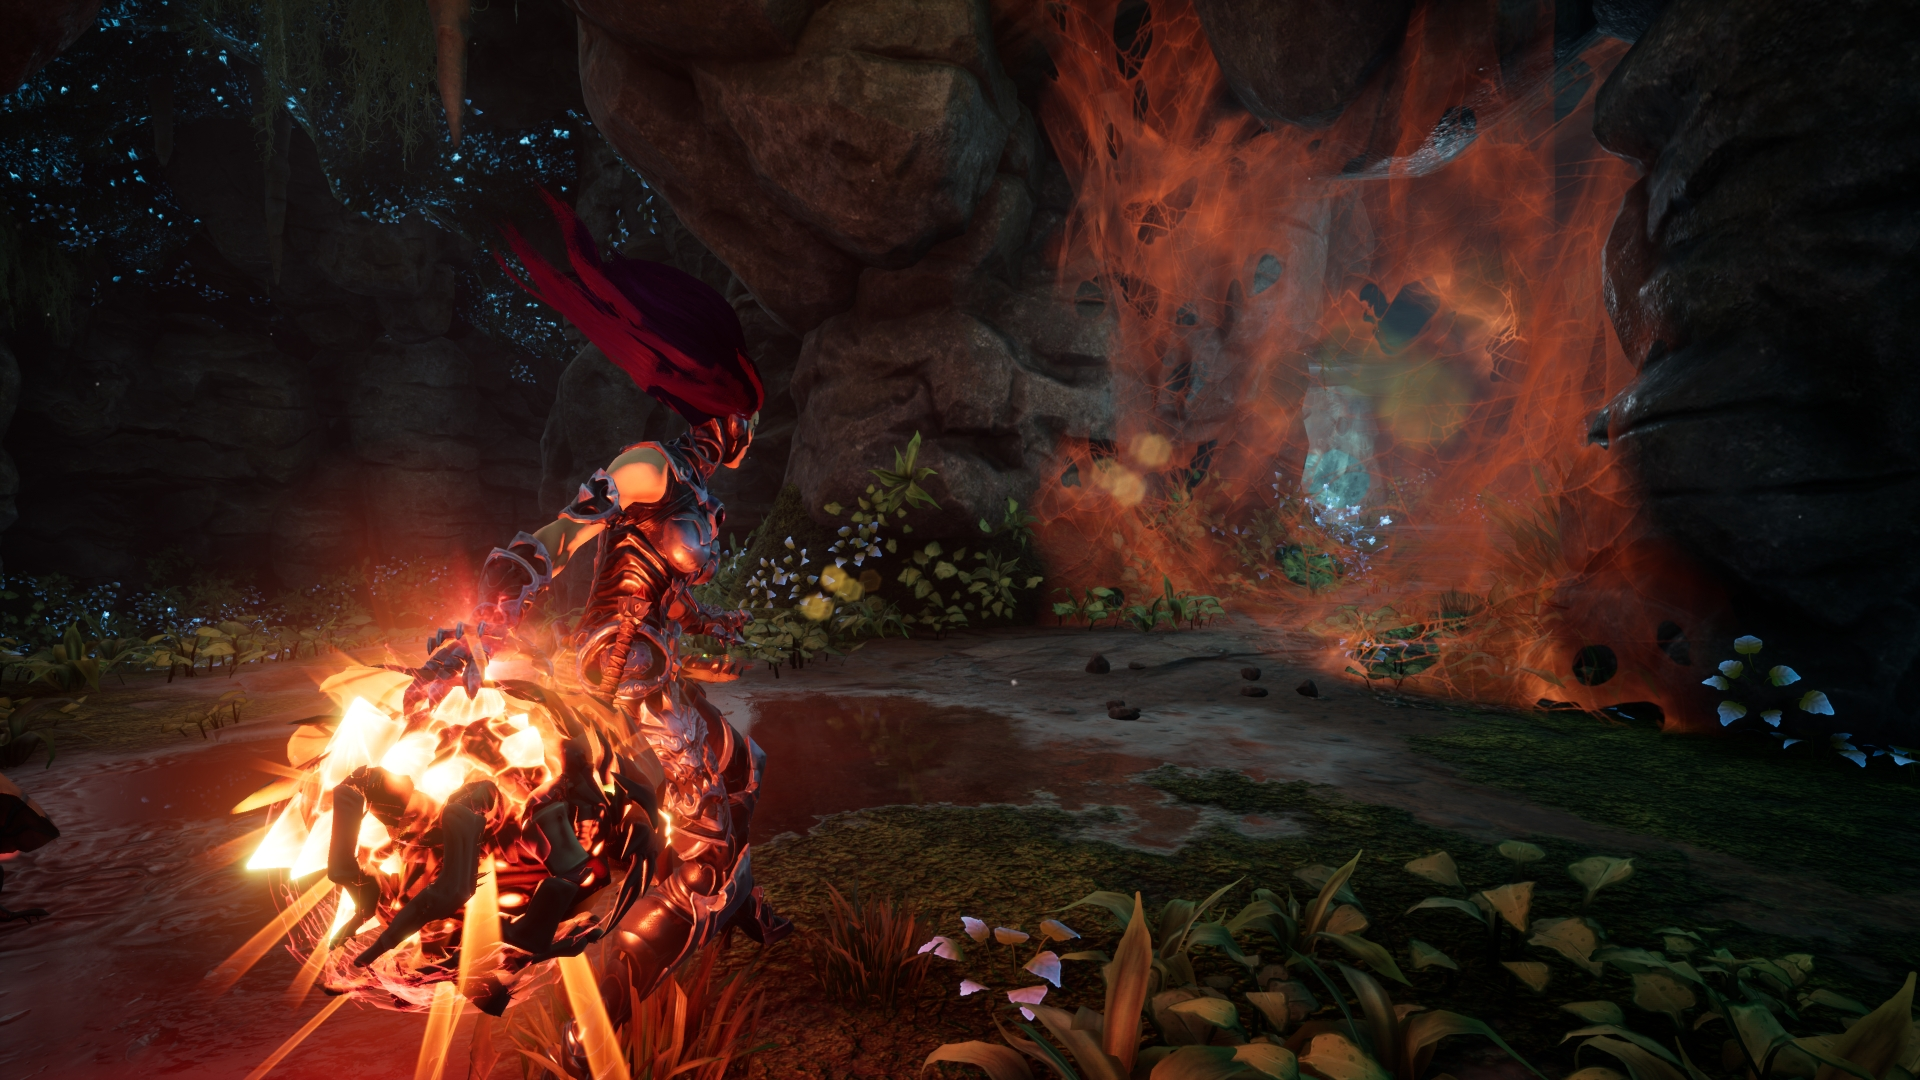 Darksiders 3 Trophies Revealed, Include Difficulty-Related Trophies